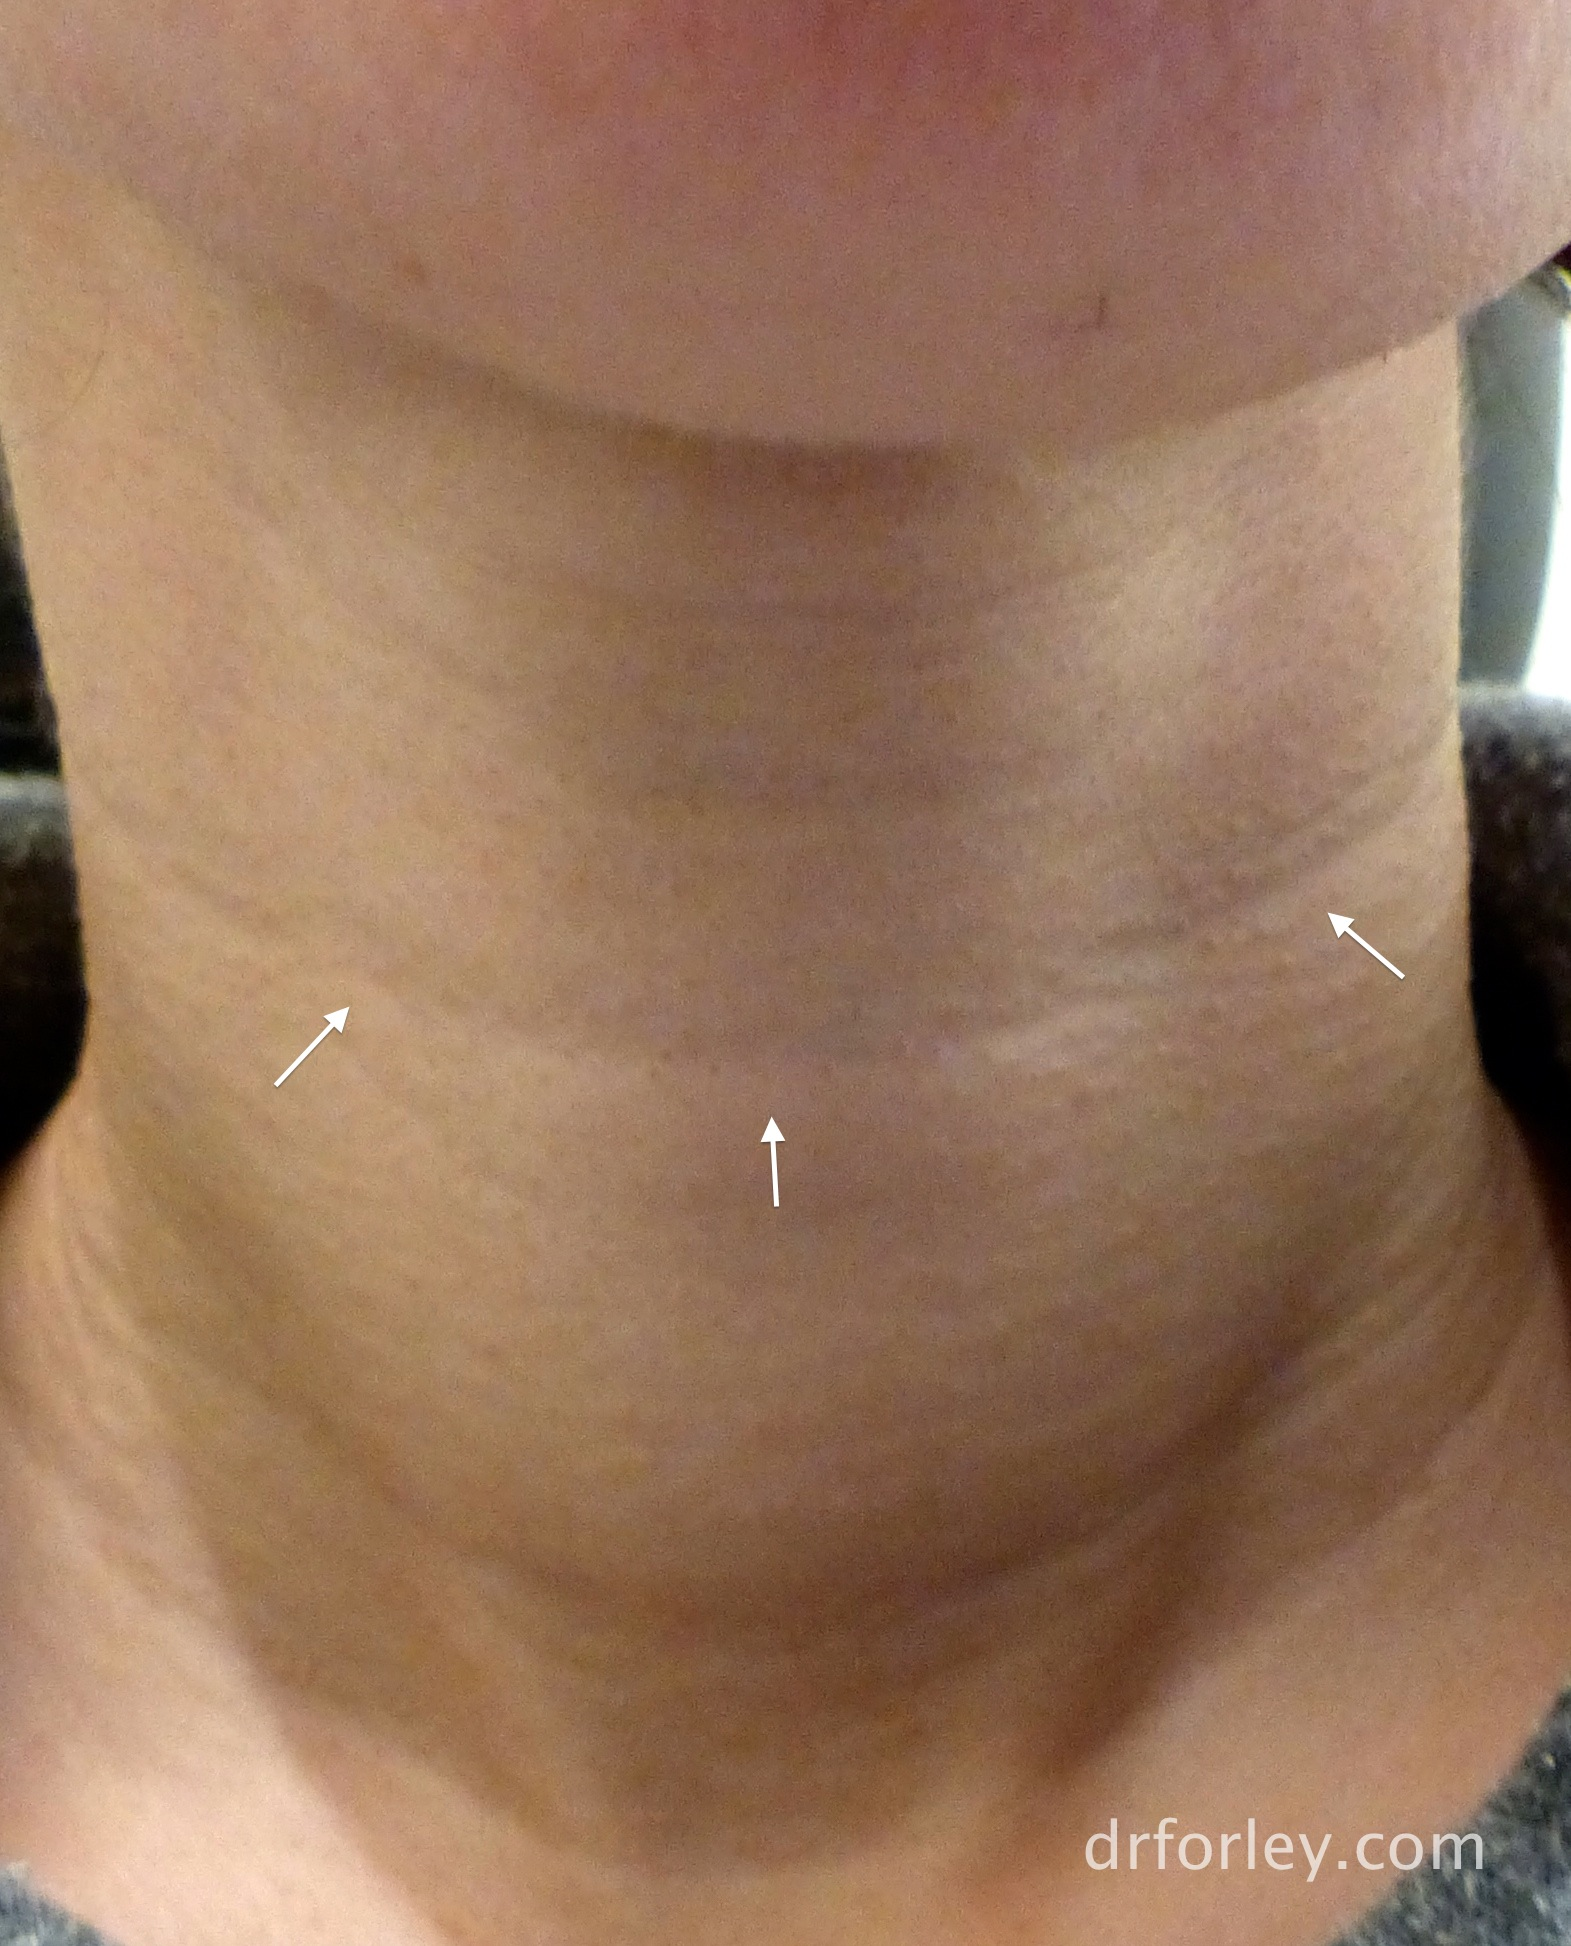 Blog - A NEW TREATMENT FOR NECK WRINKLES Photo